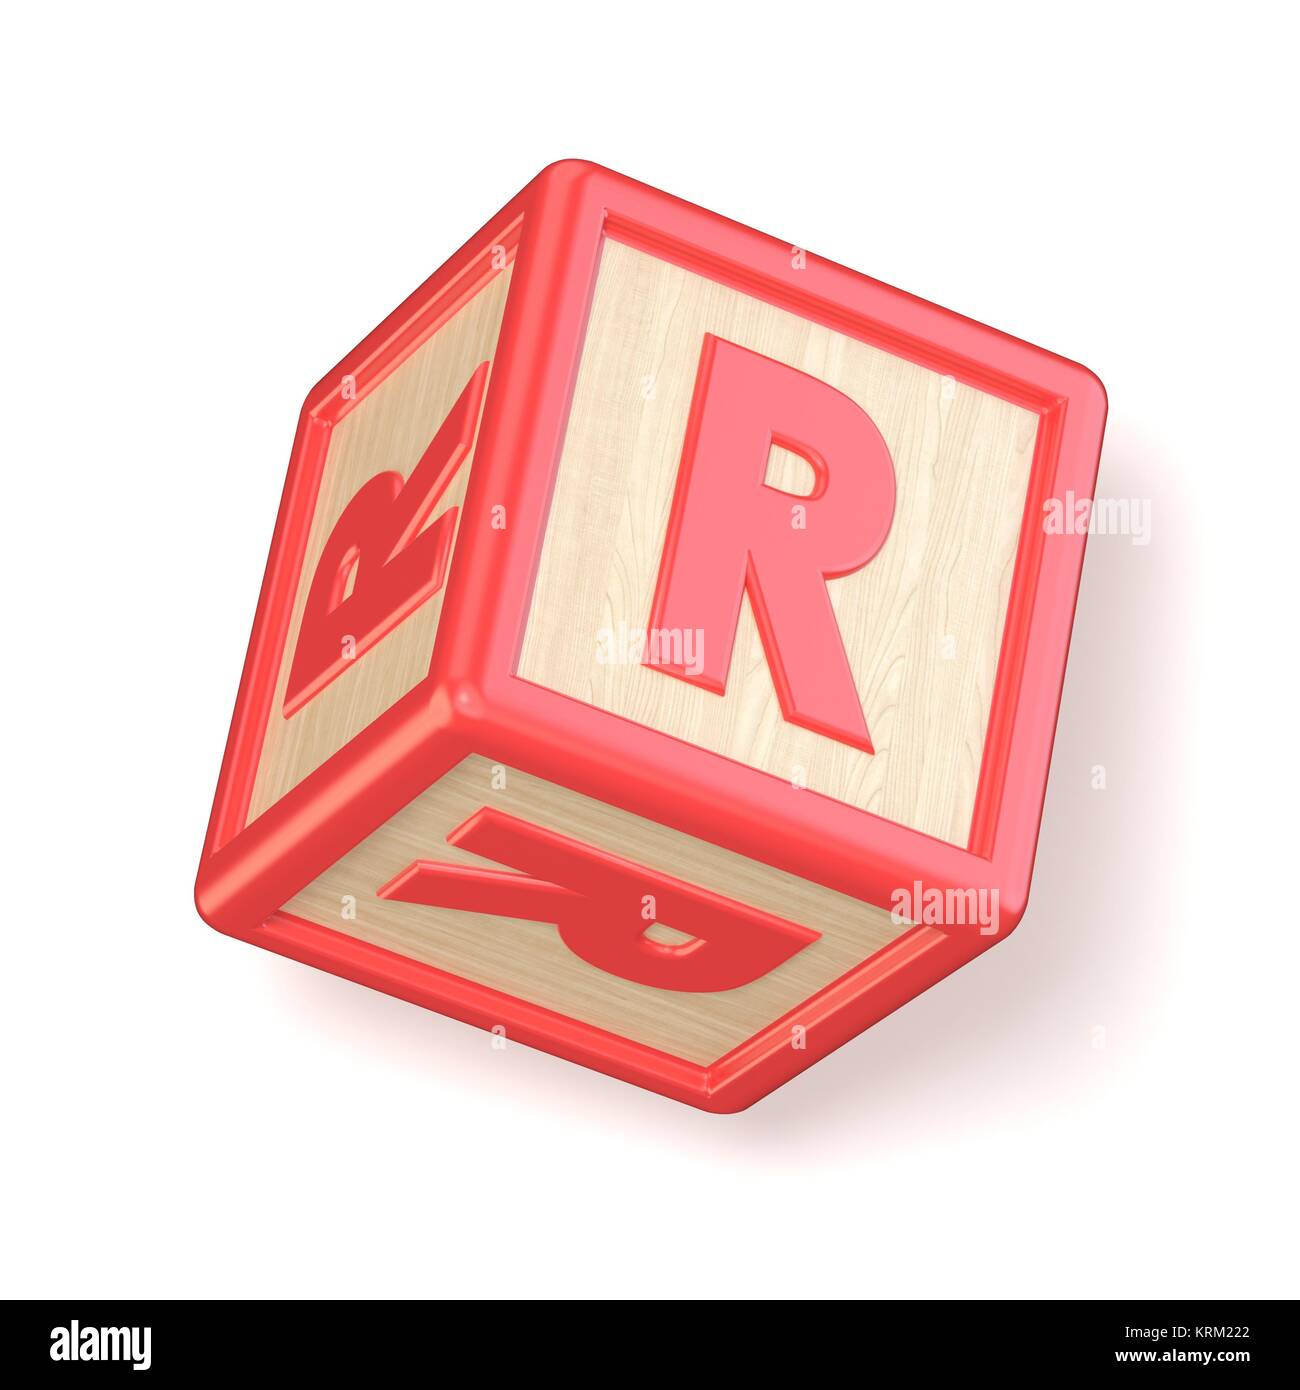 Letter R Wooden Alphabet Blocks Font Rotated 3d Stock Photo